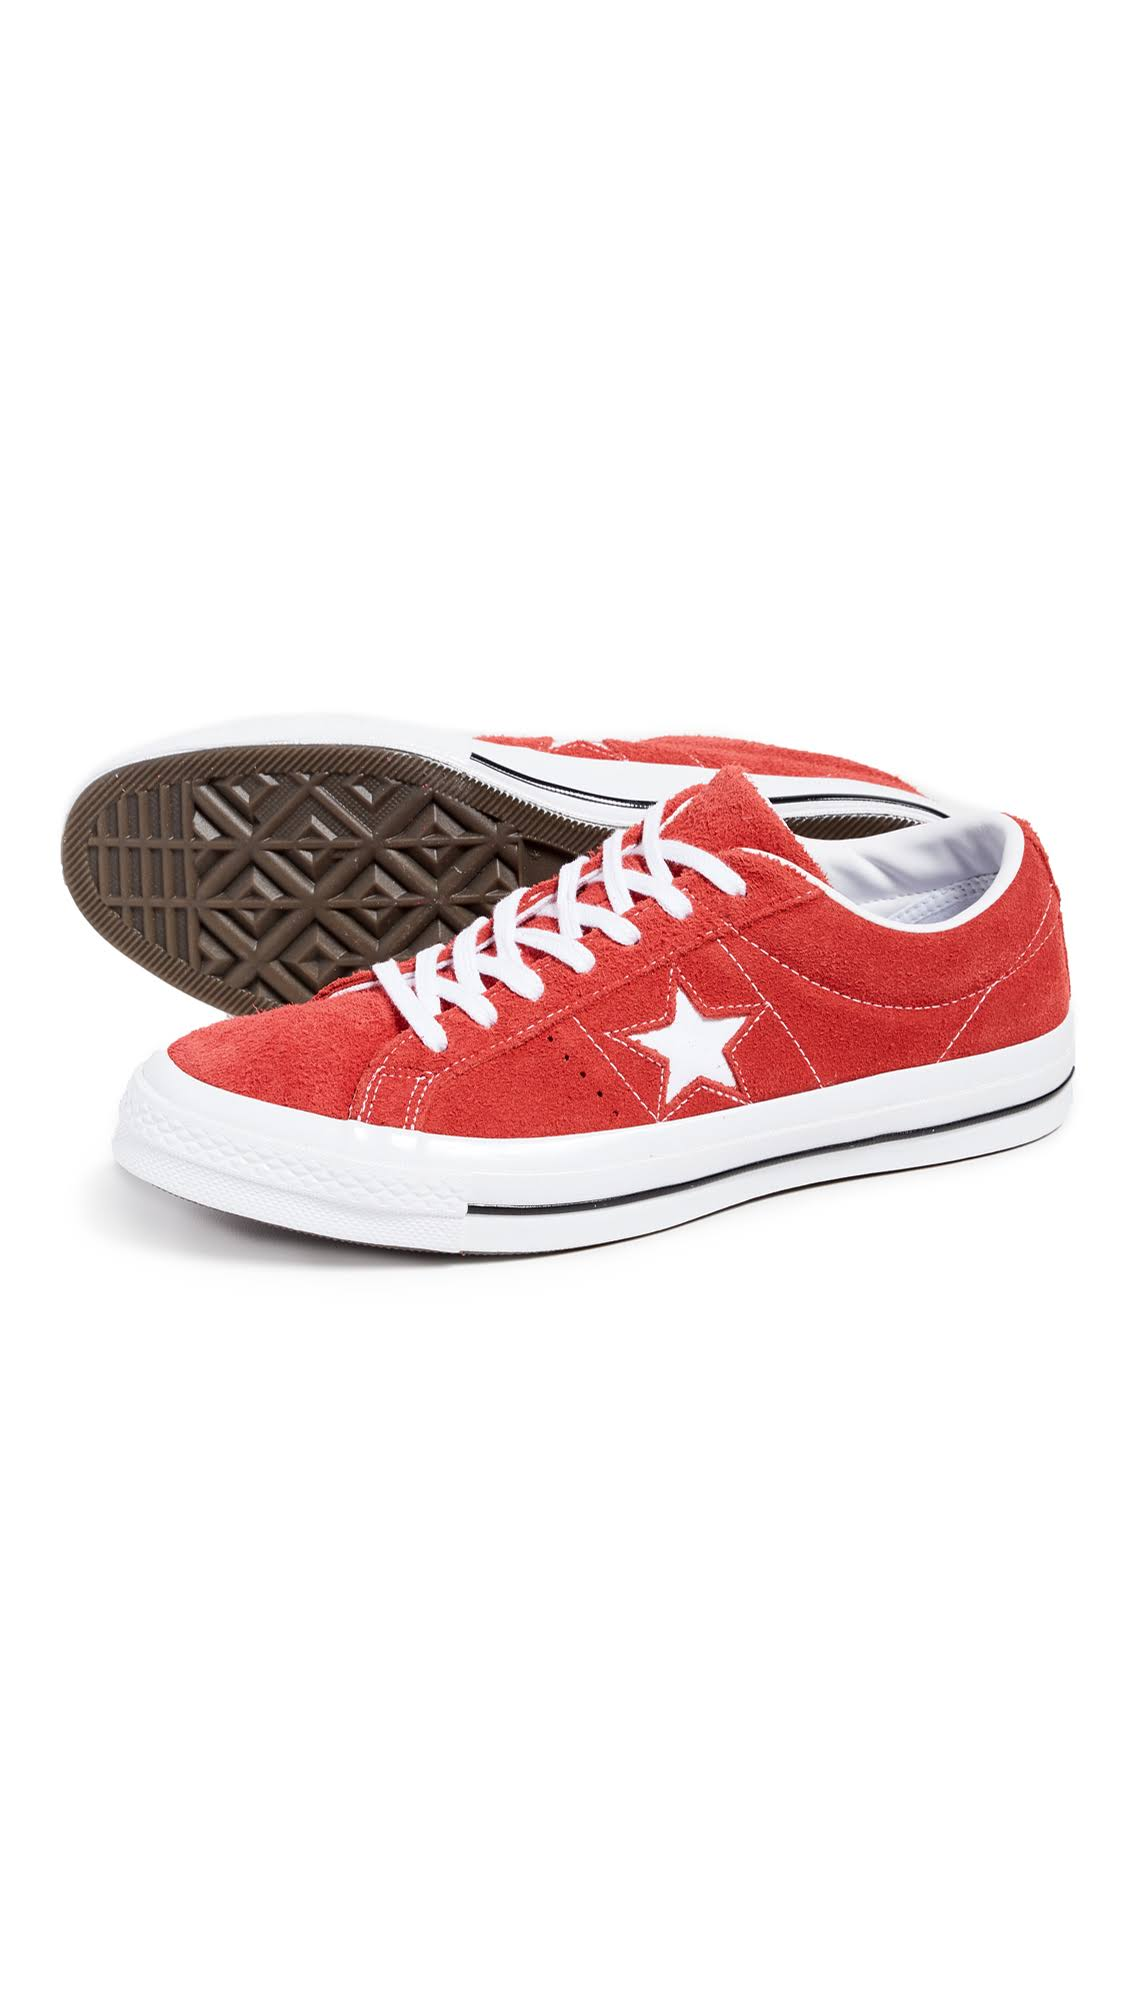 5 One Pelle Converse In Rosse Sneakers Star 9 Scamosciata Basse IWDbeHYE92